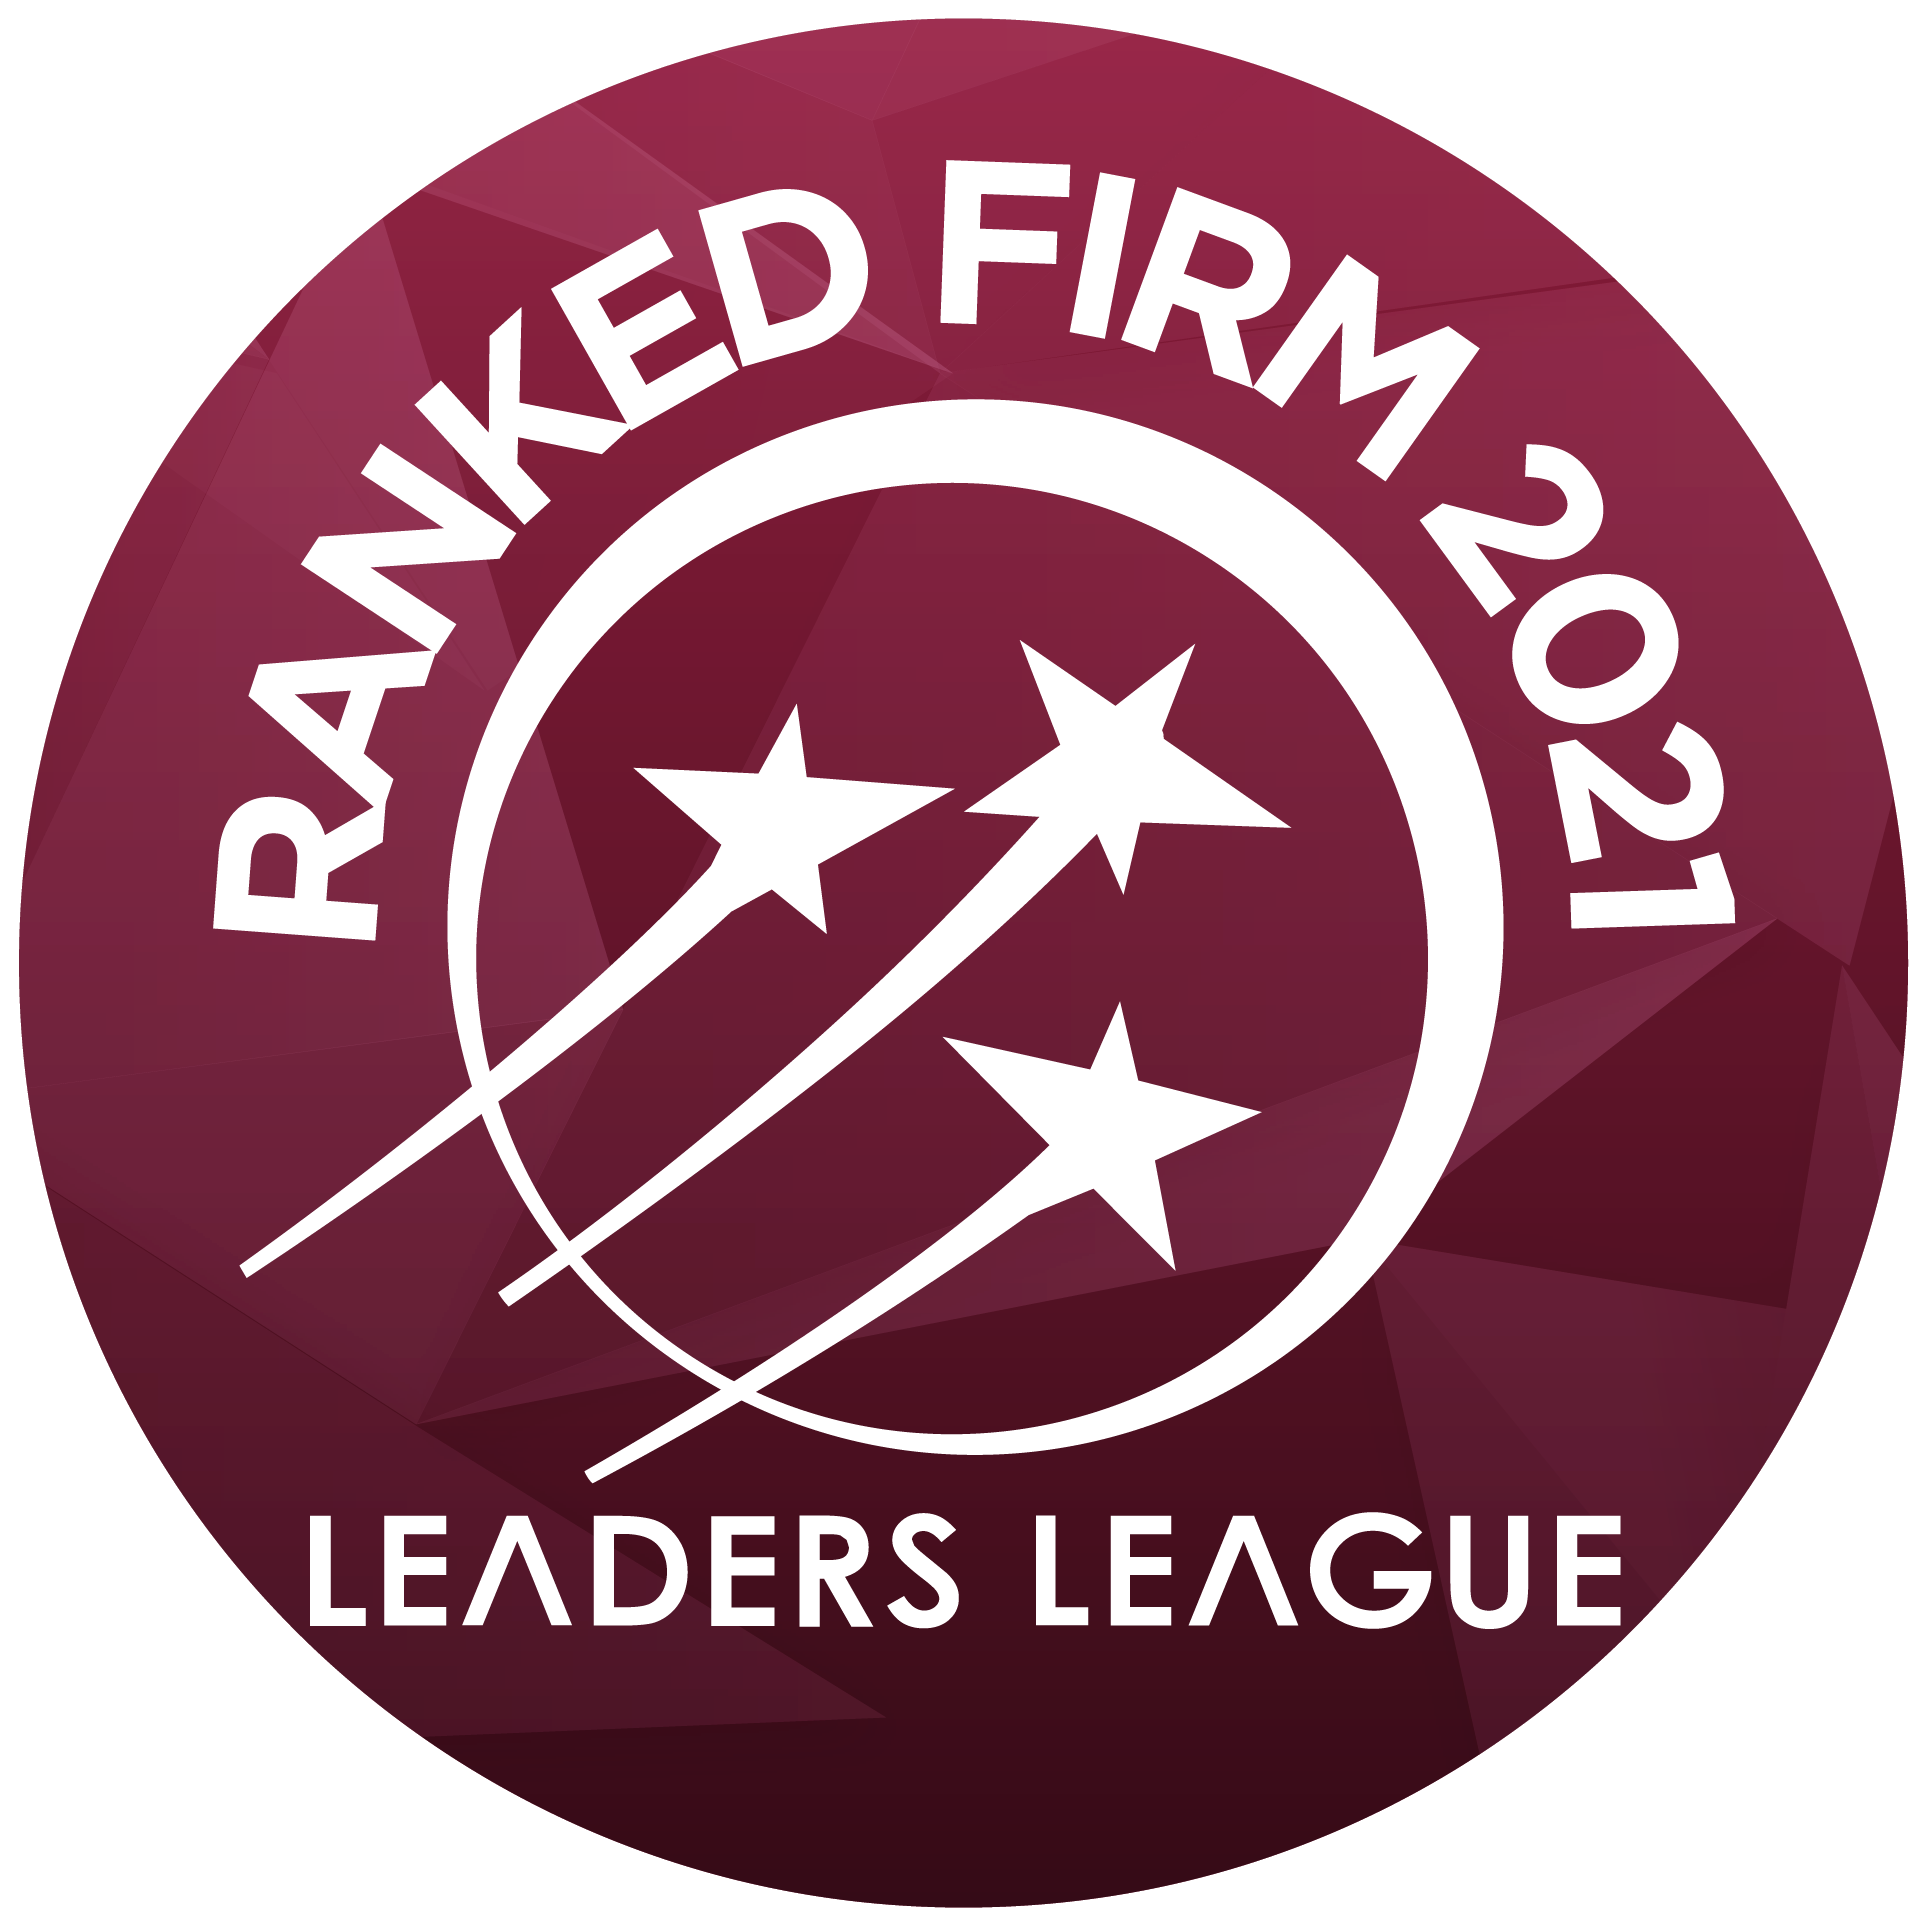 Ranked Firm 2021 - Leaders League